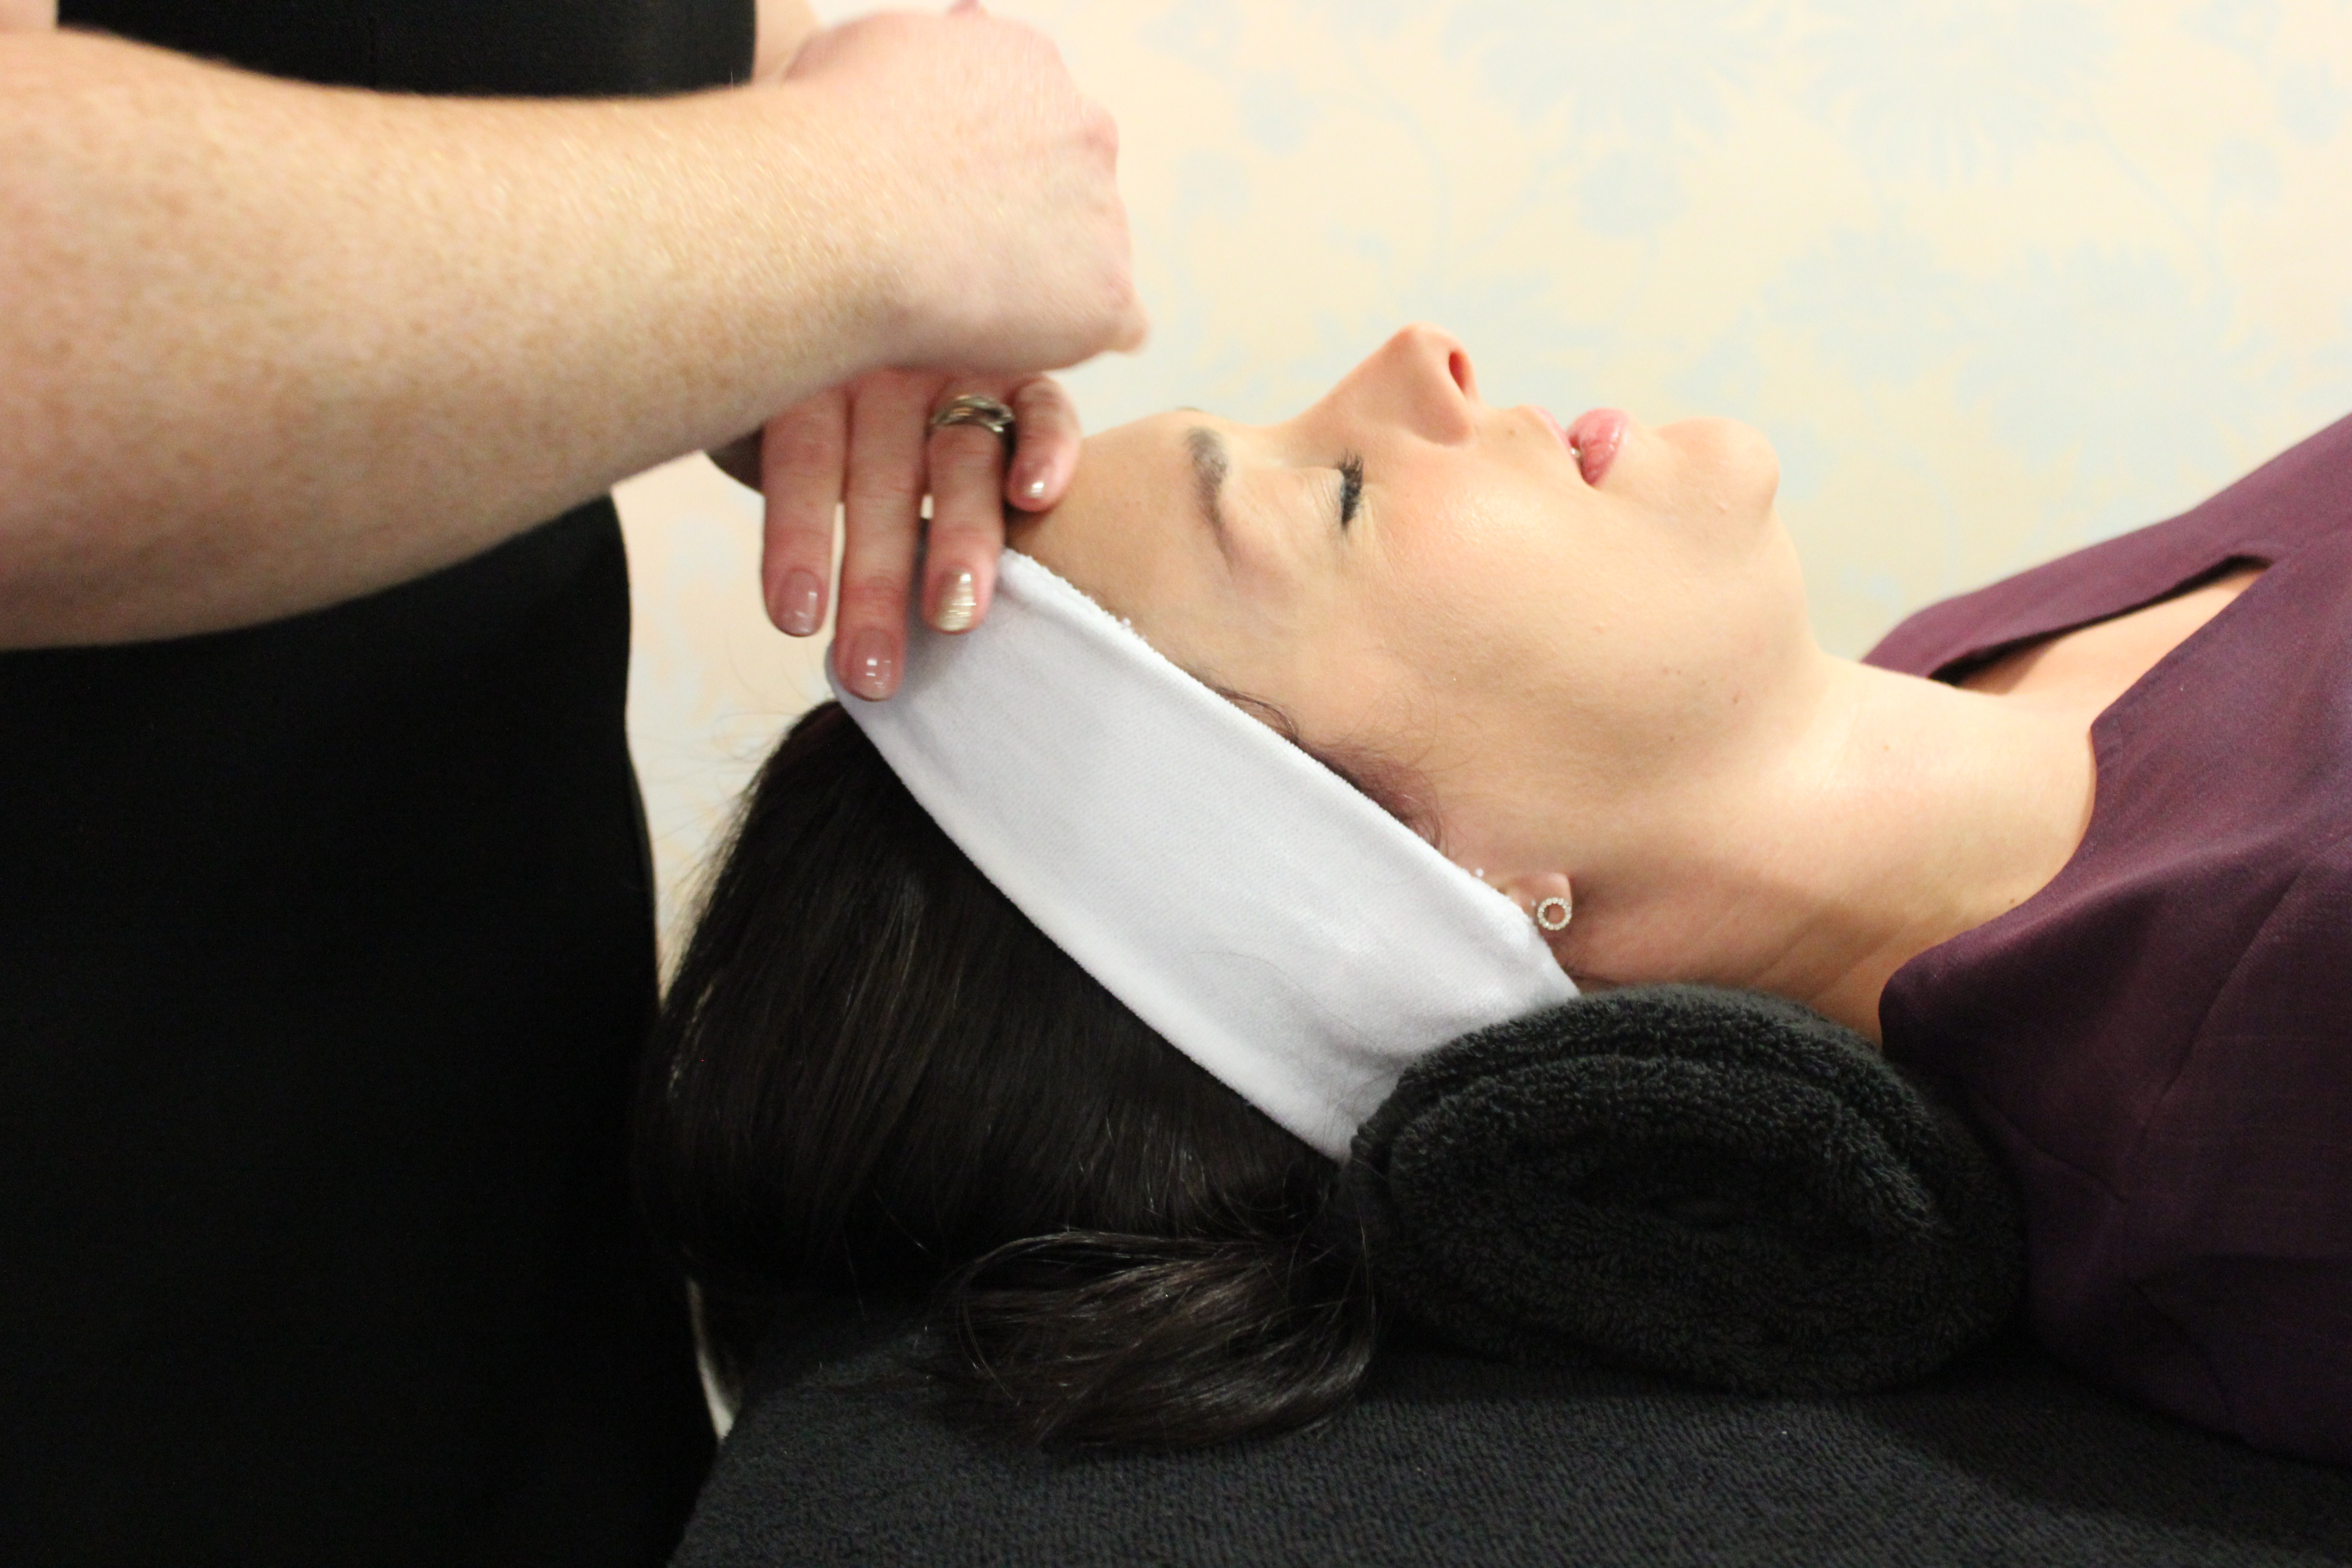 Close up image of a woman with dark hair receiving a massage before a facial treatment